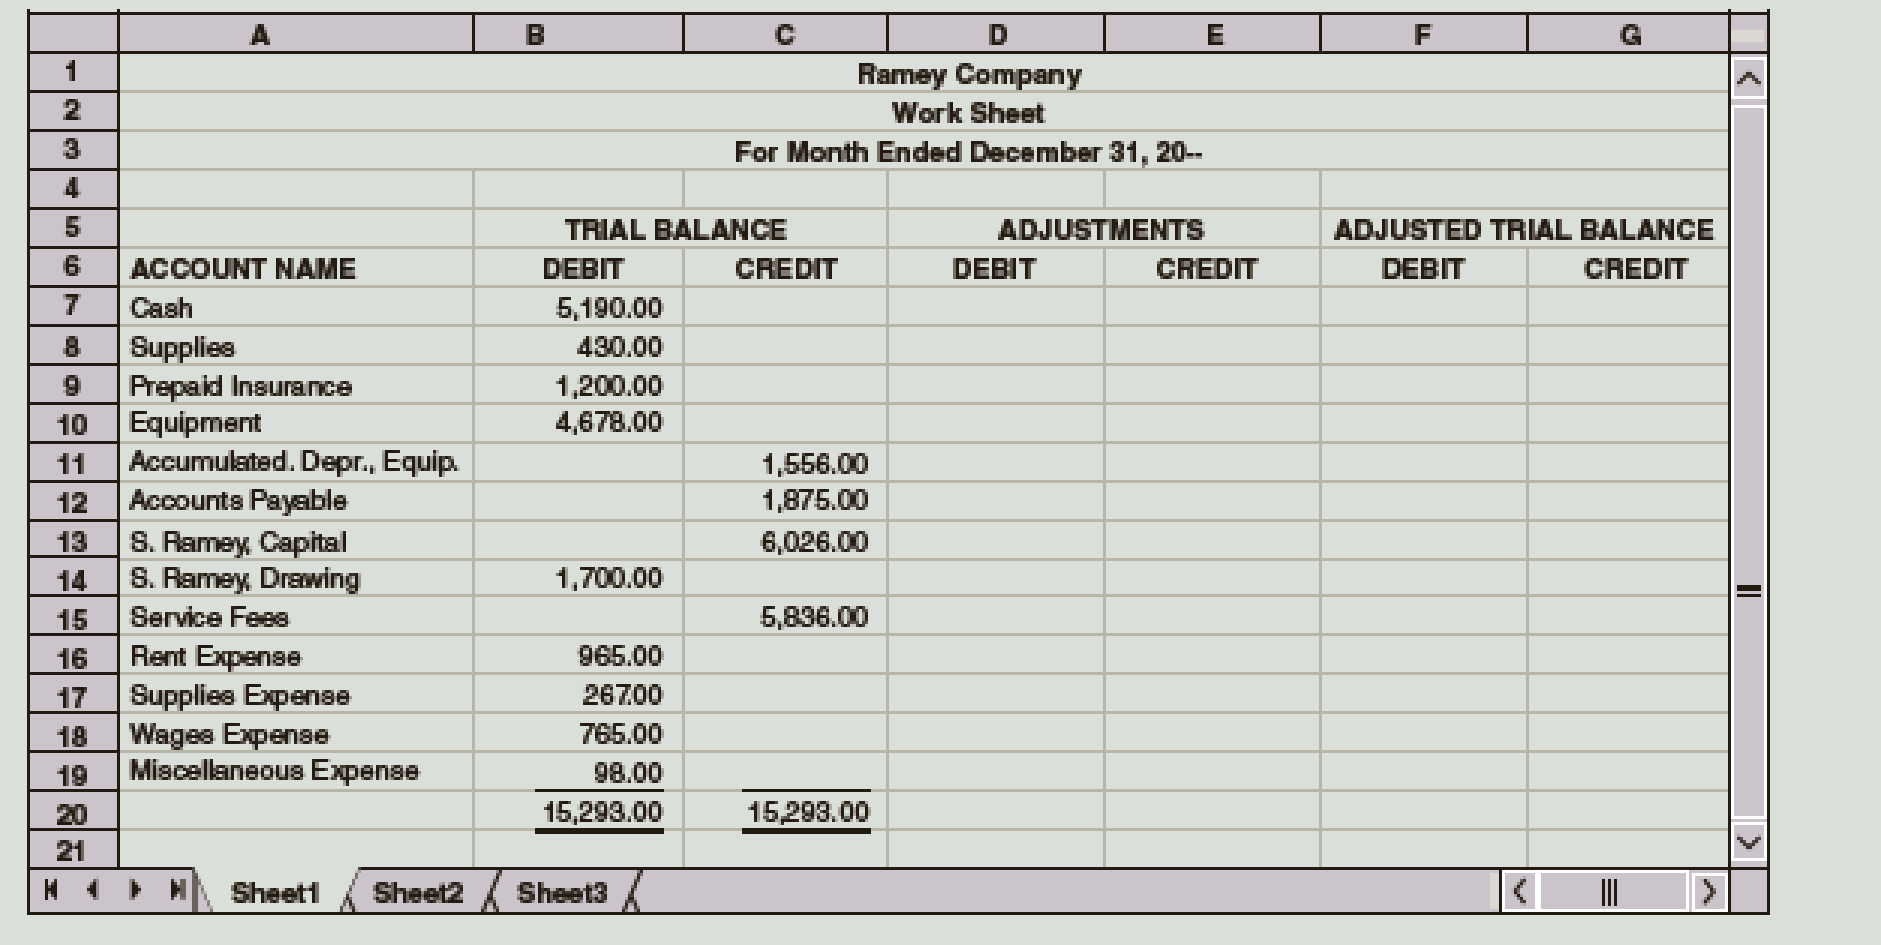 Chapter 4, Problem 5E, Complete the work sheet for Ramey Company, dated December 31, 20, through the adjusted trial balance